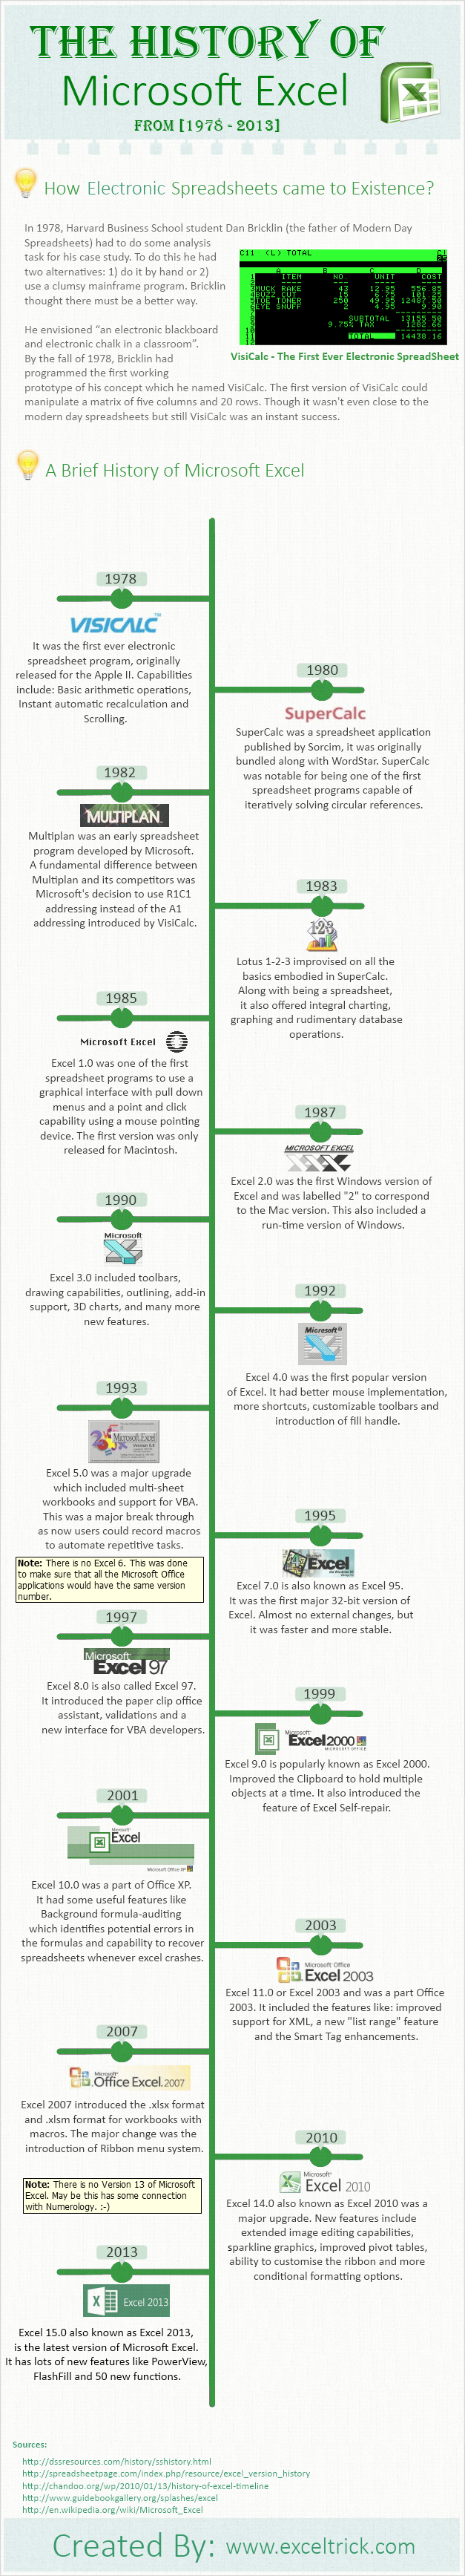 history of microsoft excel 1978 2013 infographic